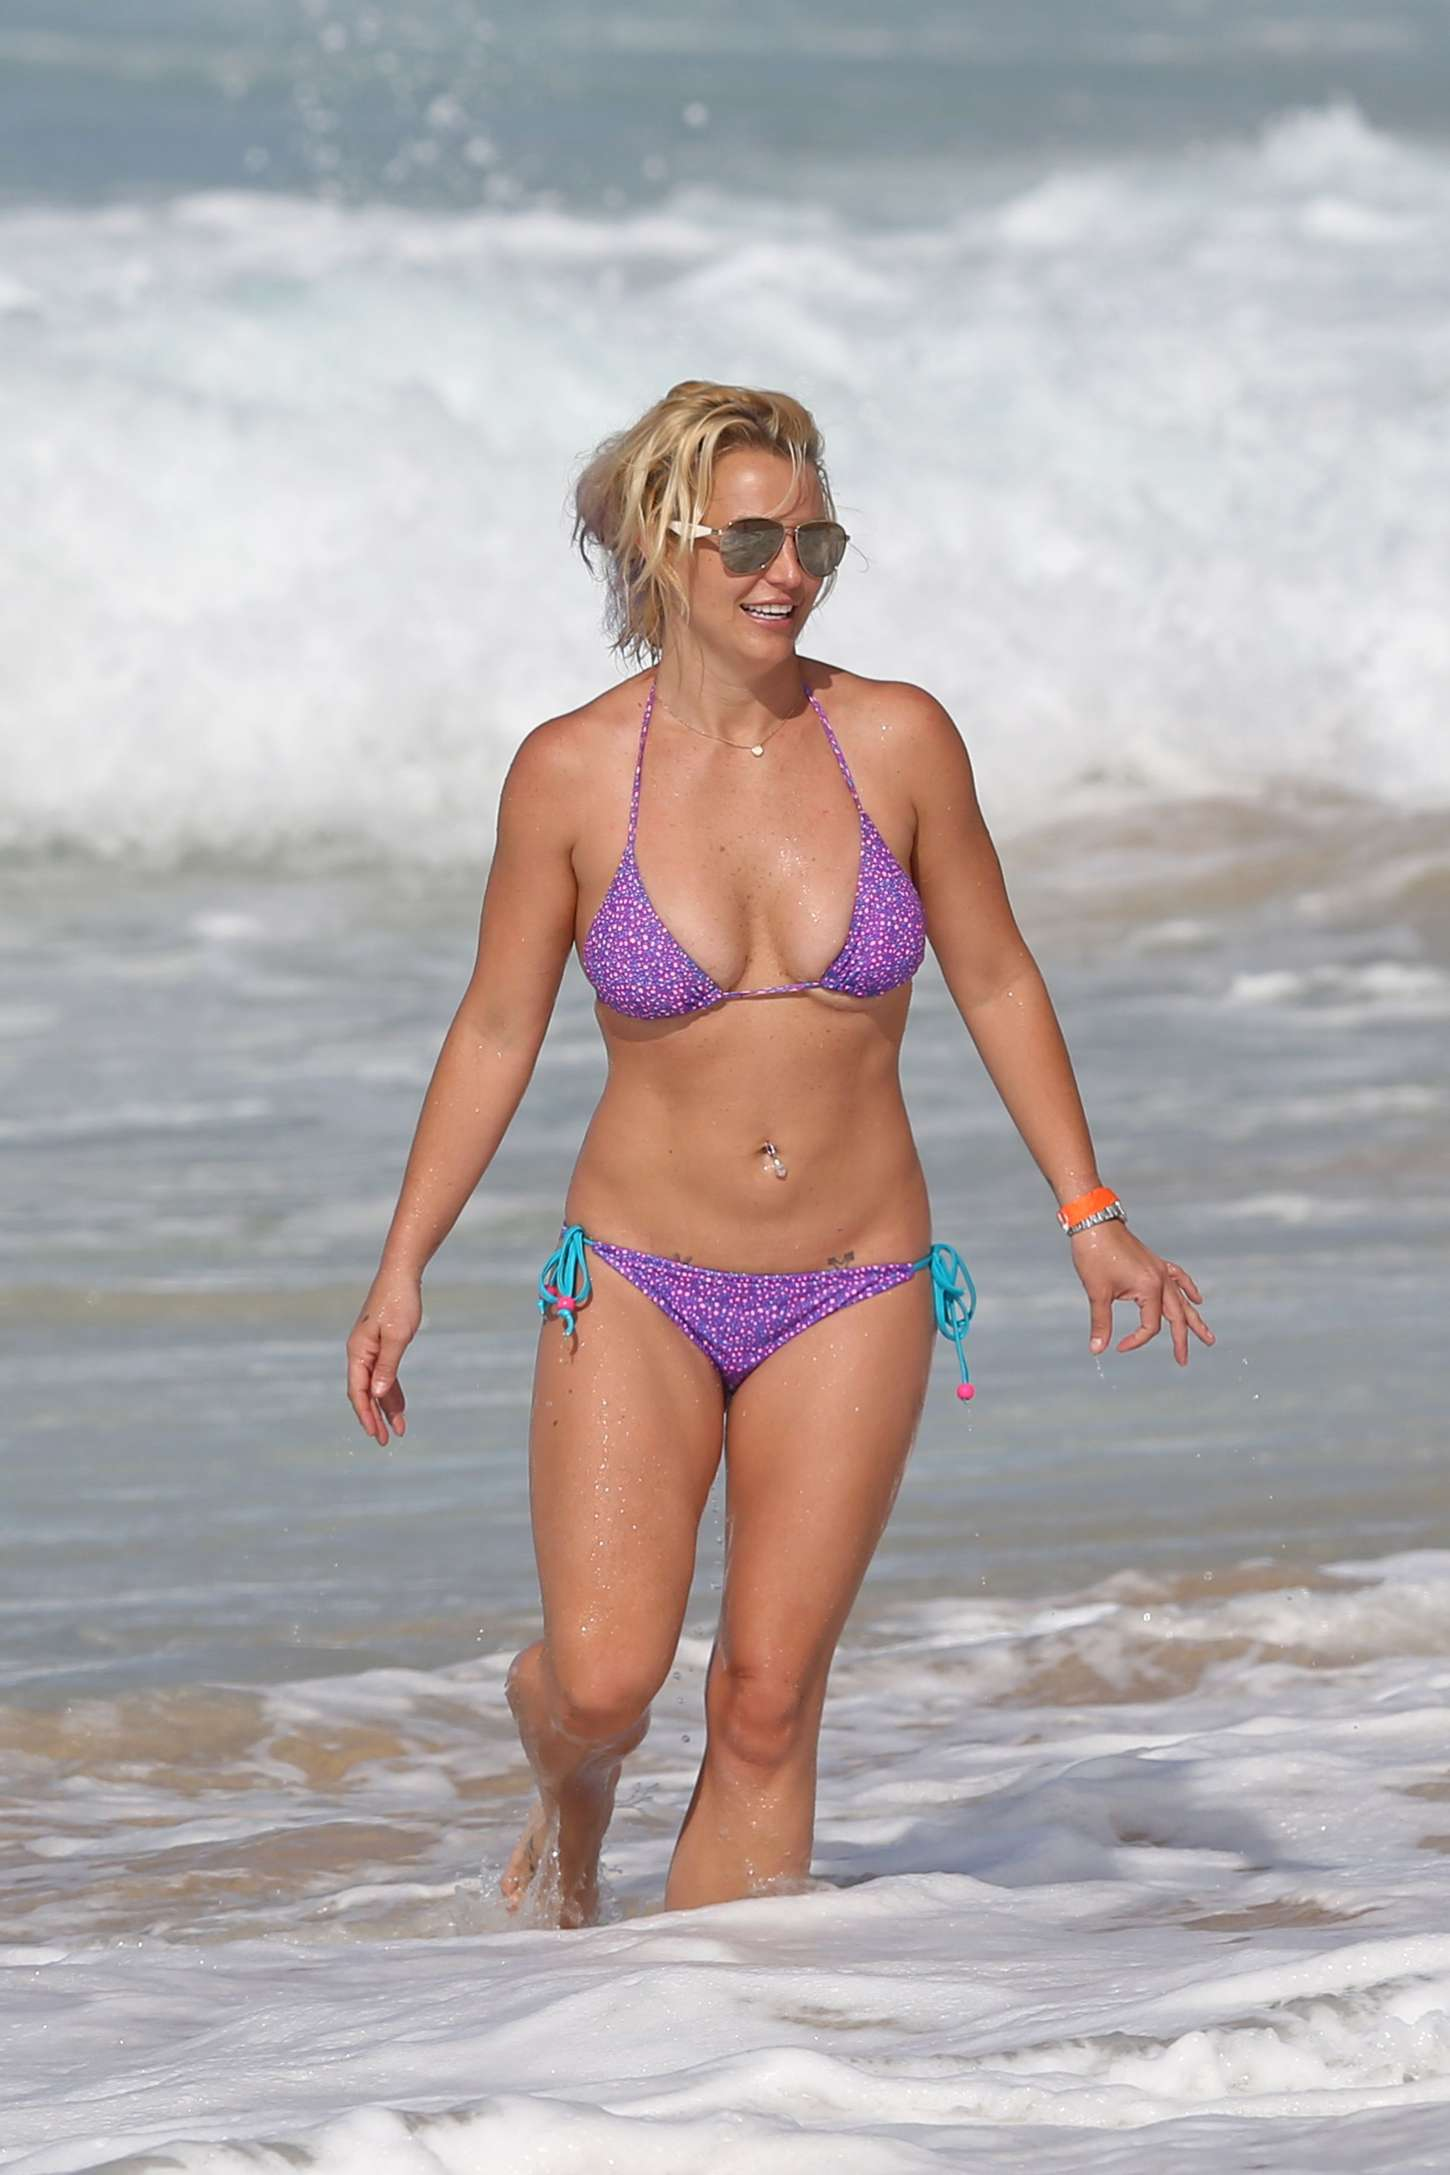 Britney Spears wears thong bikinis The Superficial